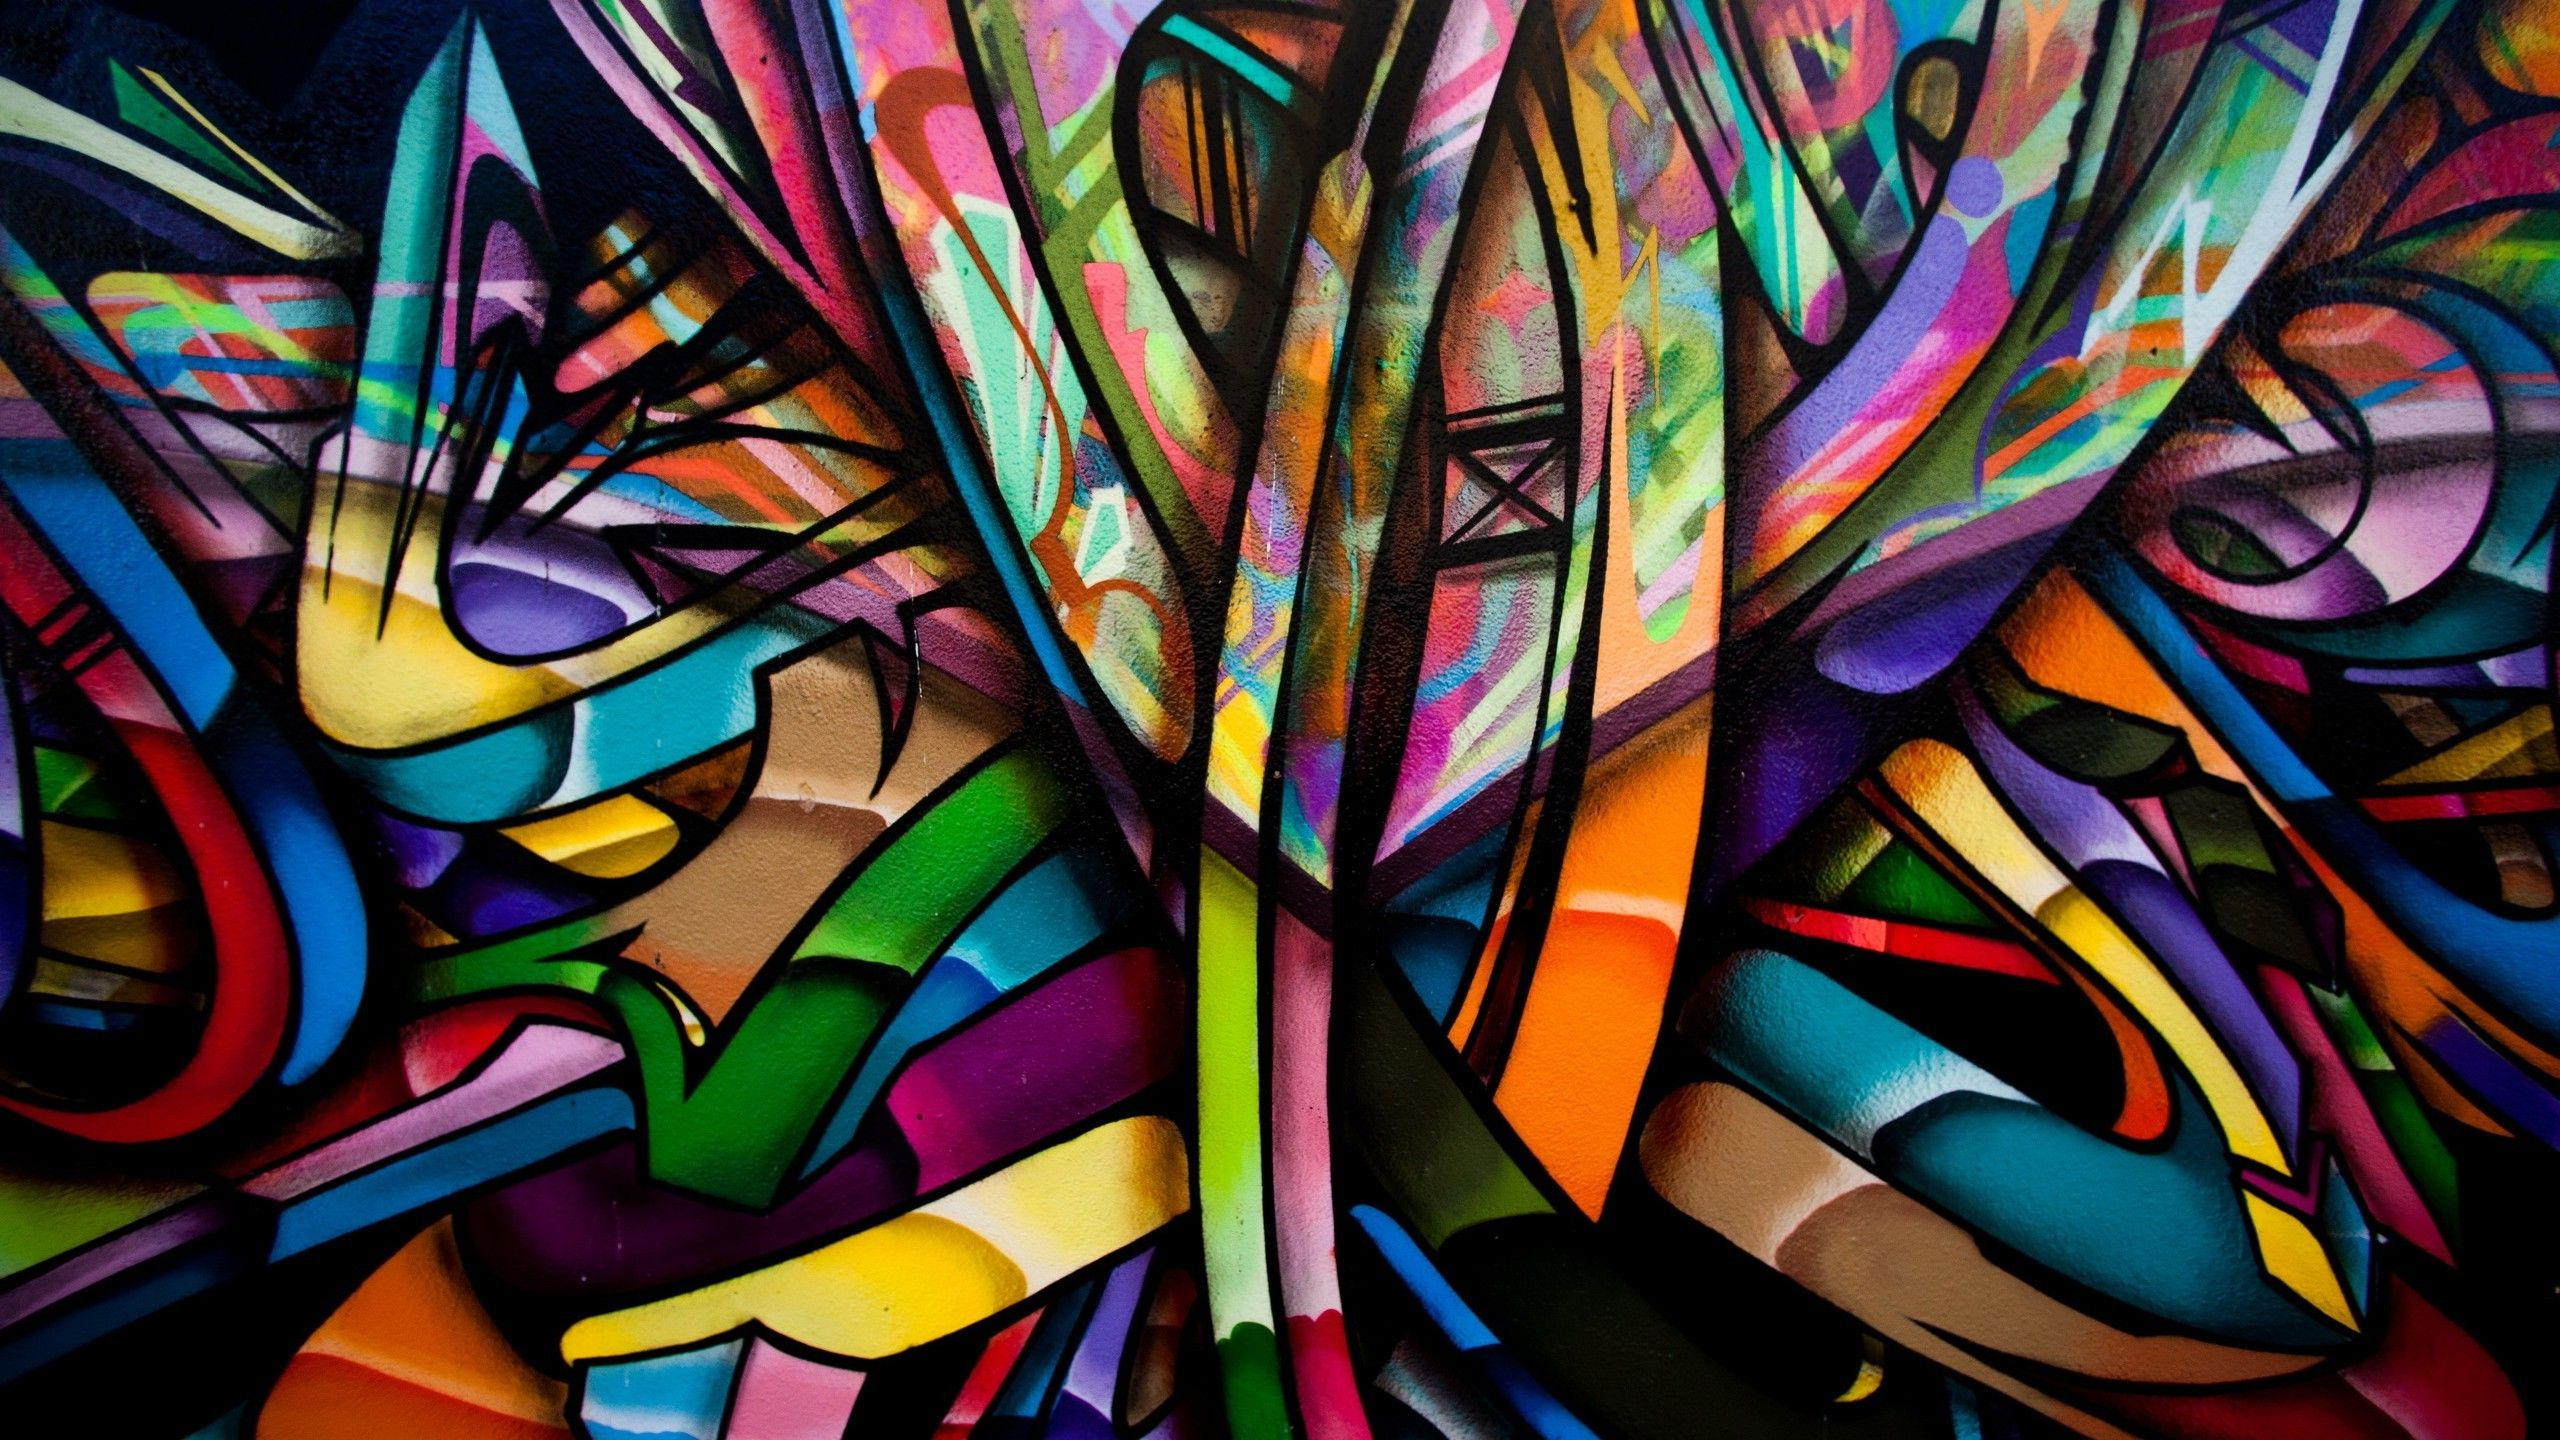 Abstract colorful graffiti walls artwork painting for Colorful wallpaper for walls